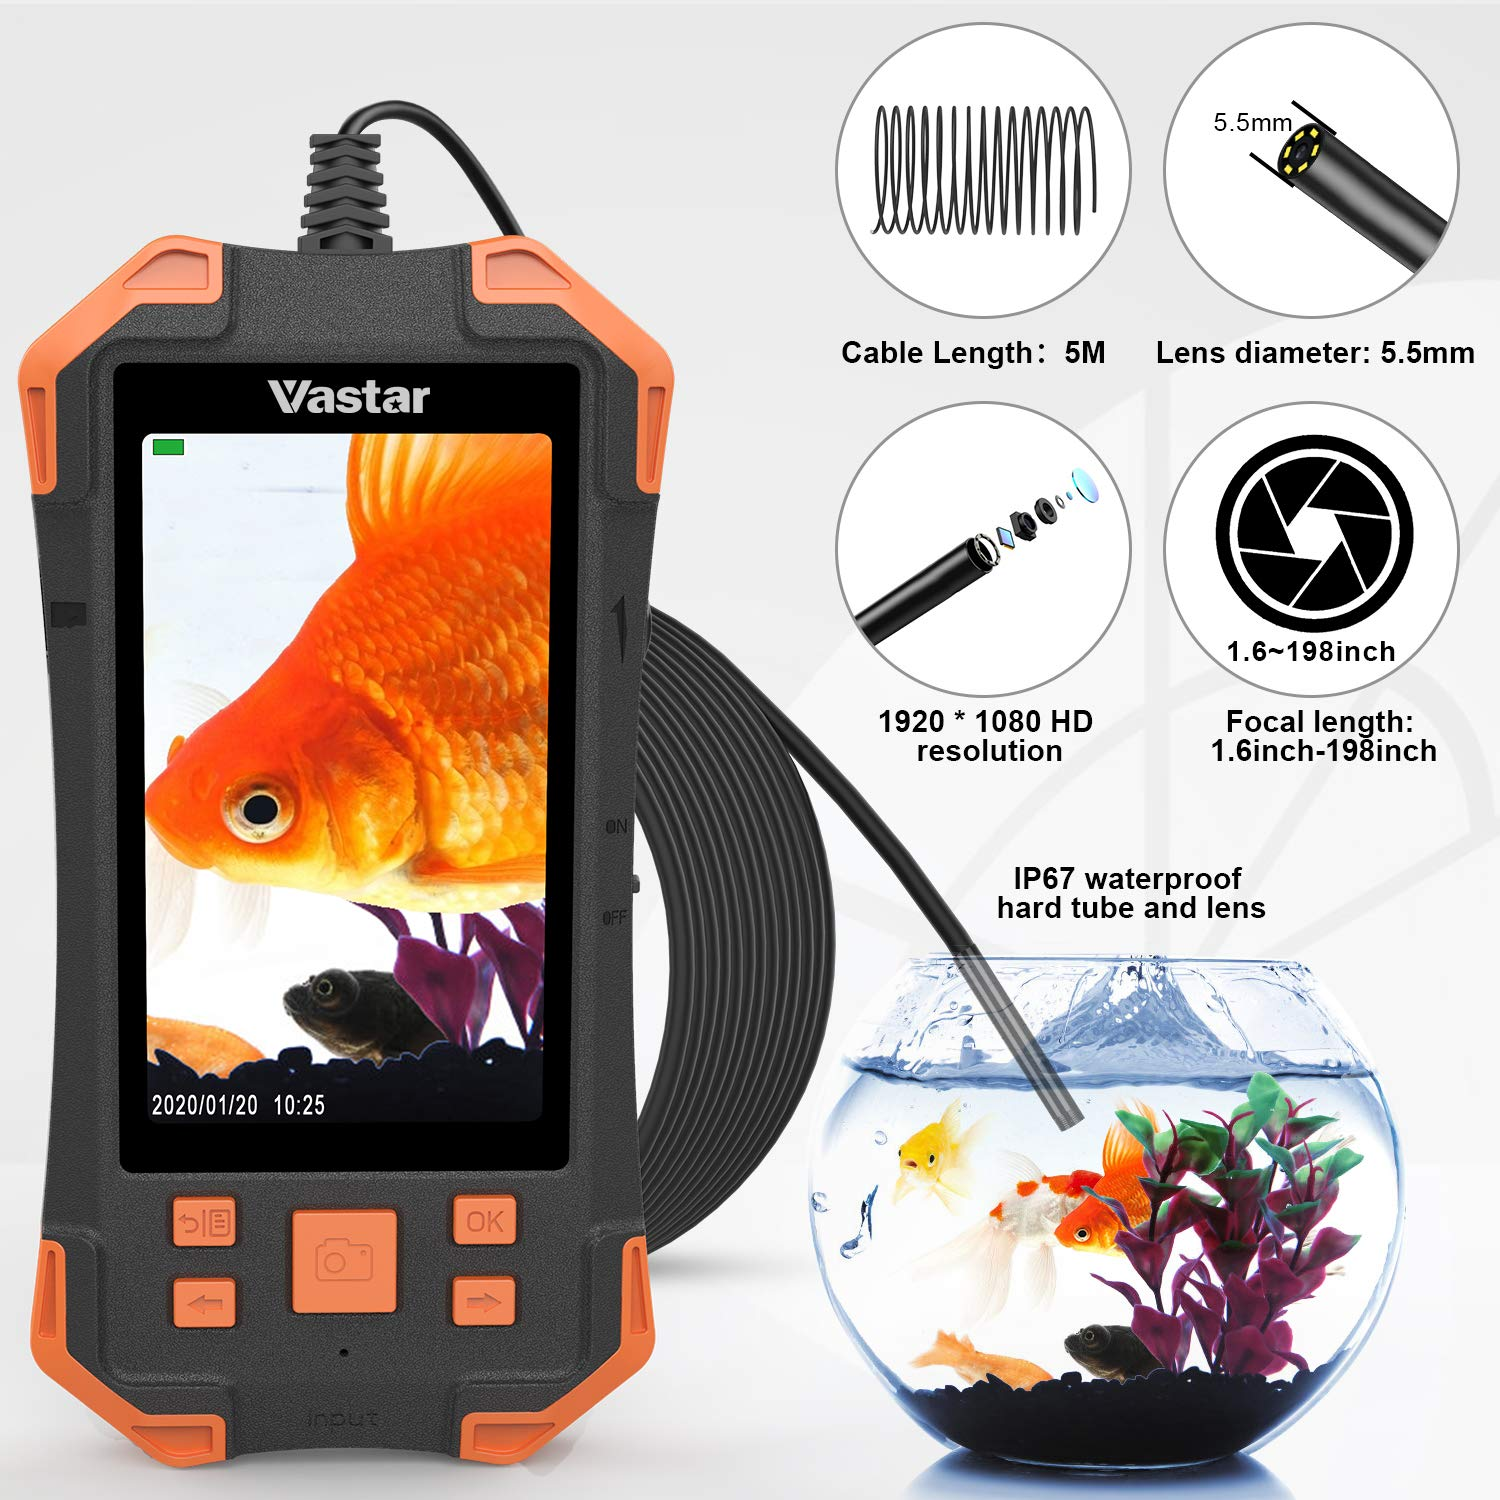 1080P HD 4.3inch LCD Screen IP67 Waterproof Borescope Vastar Inspection Camera Industrial Endoscope 3000mAh Rechargeable Battery Video Inspection Camera with 6 Adjustable LED Lights